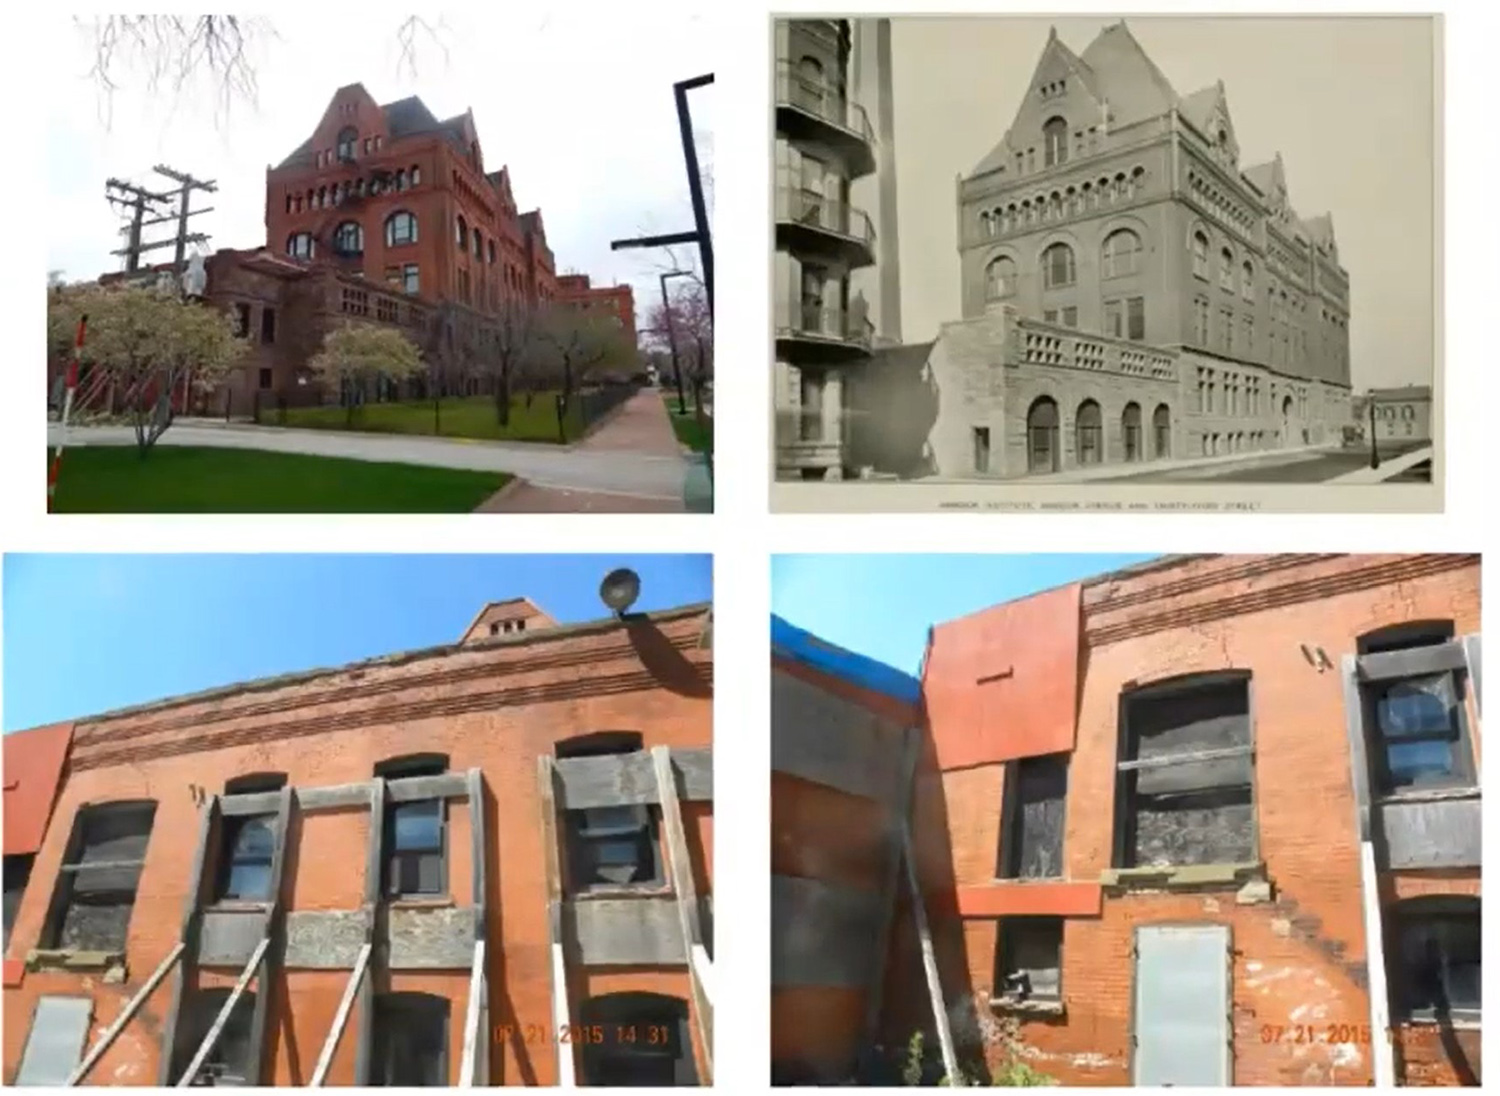 Images of Boiler House at 3300 S Federal Street. Images by Pappageorge Haymes